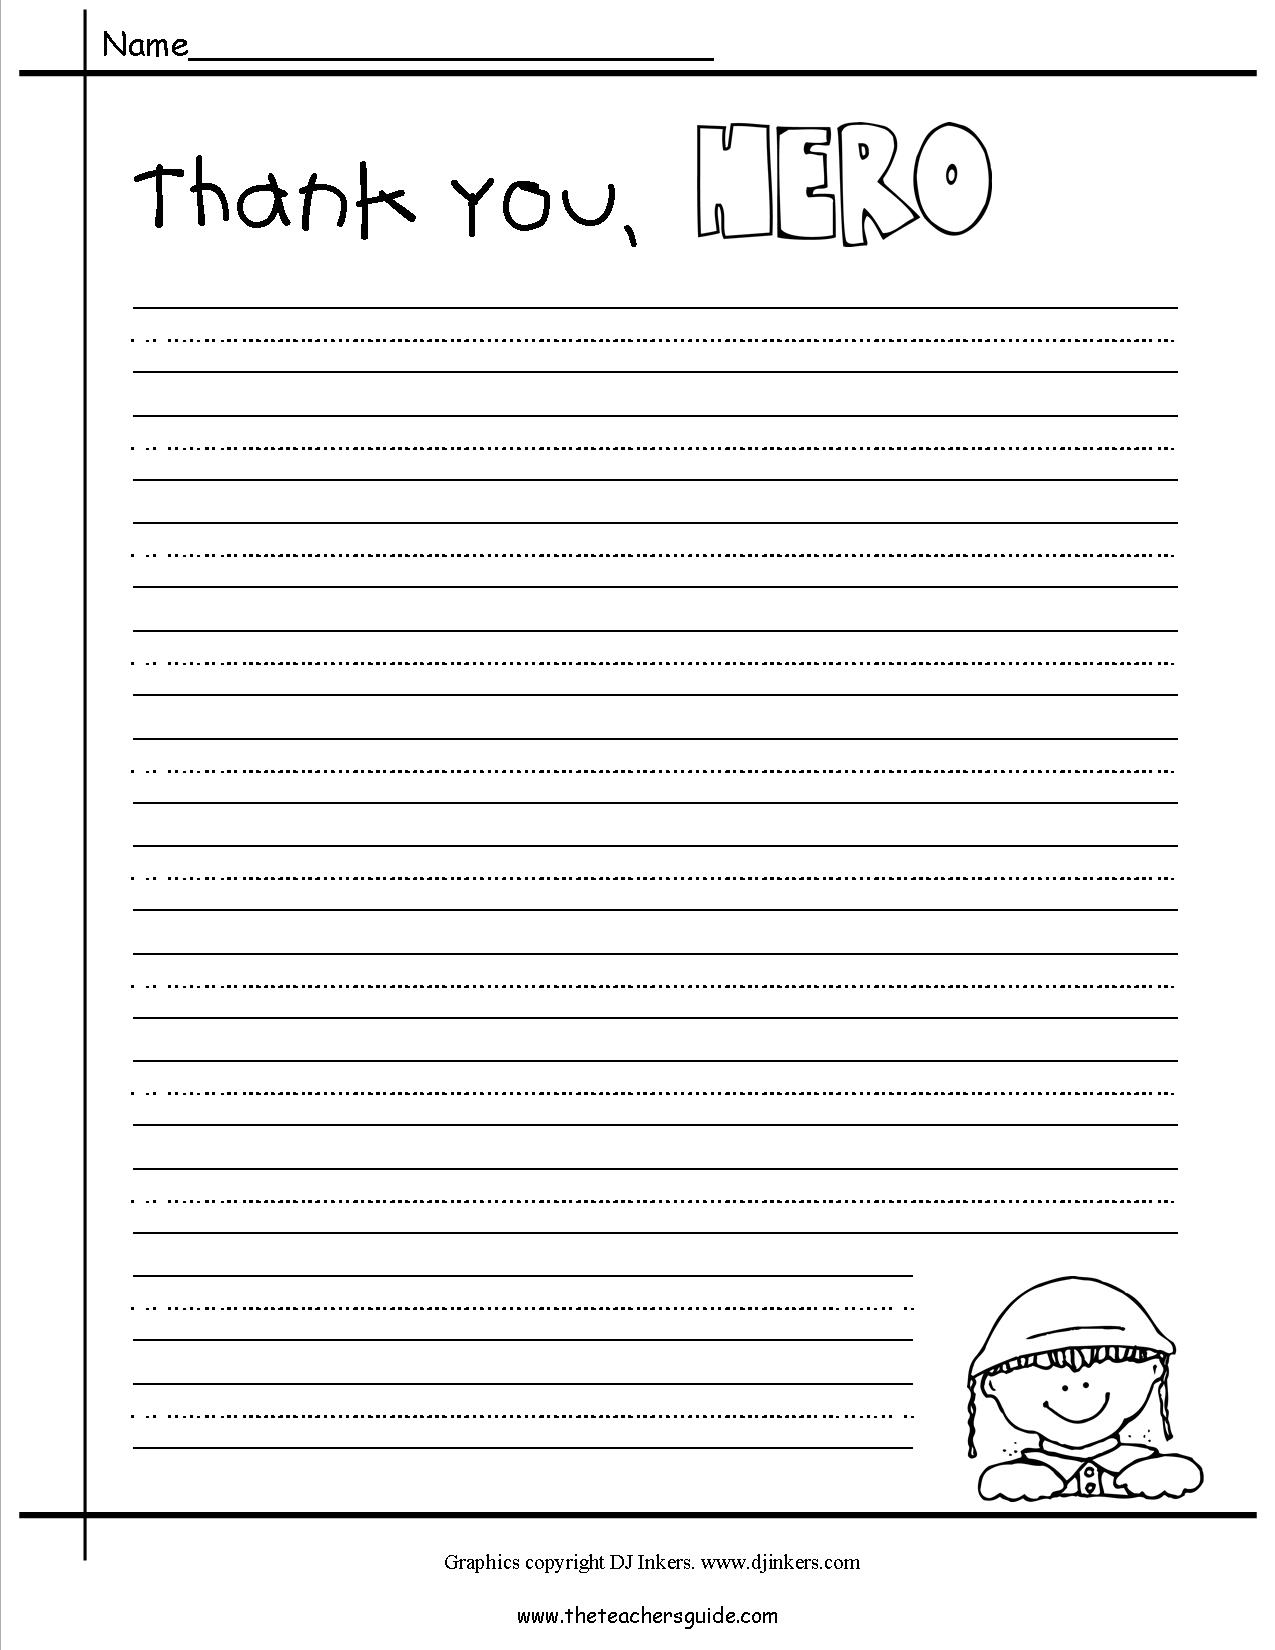 Veterans day thank you letter template examples letter cover templates veterans day thank you letter template veteran thank you letter image collections letter format formal thecheapjerseys